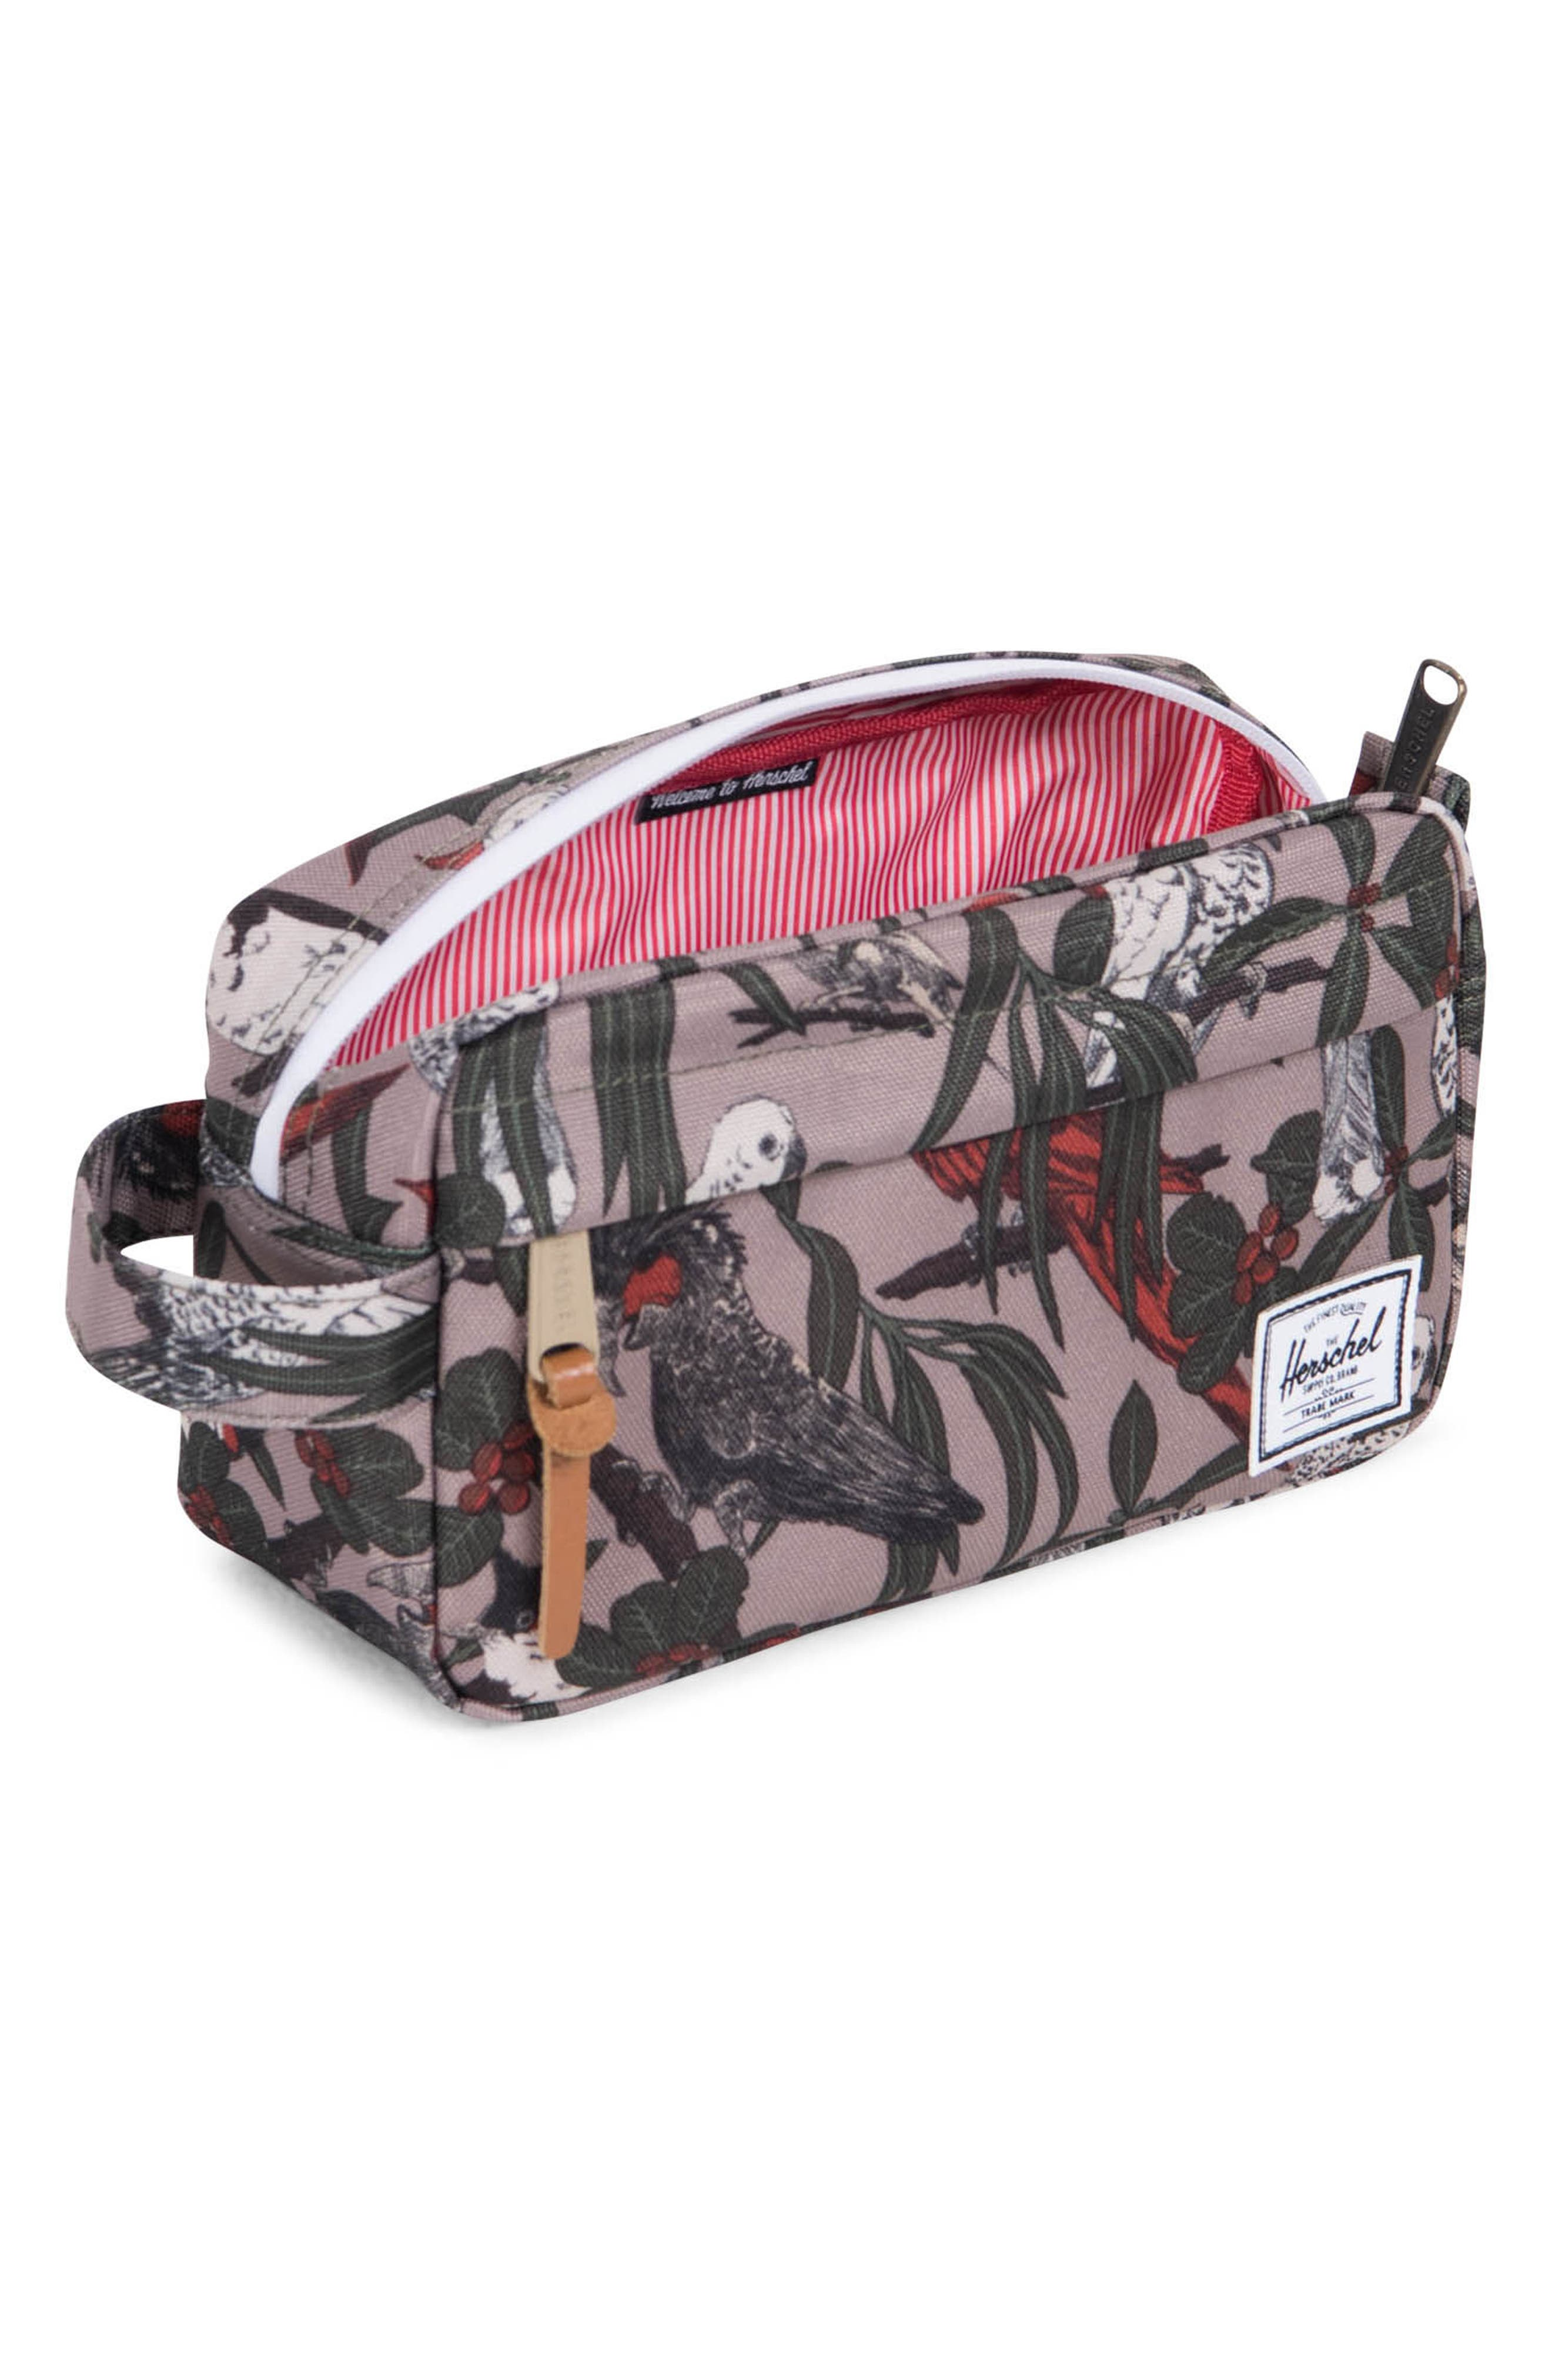 Carry-On Travel Kit,                             Alternate thumbnail 2, color,                             Brindle Parlour